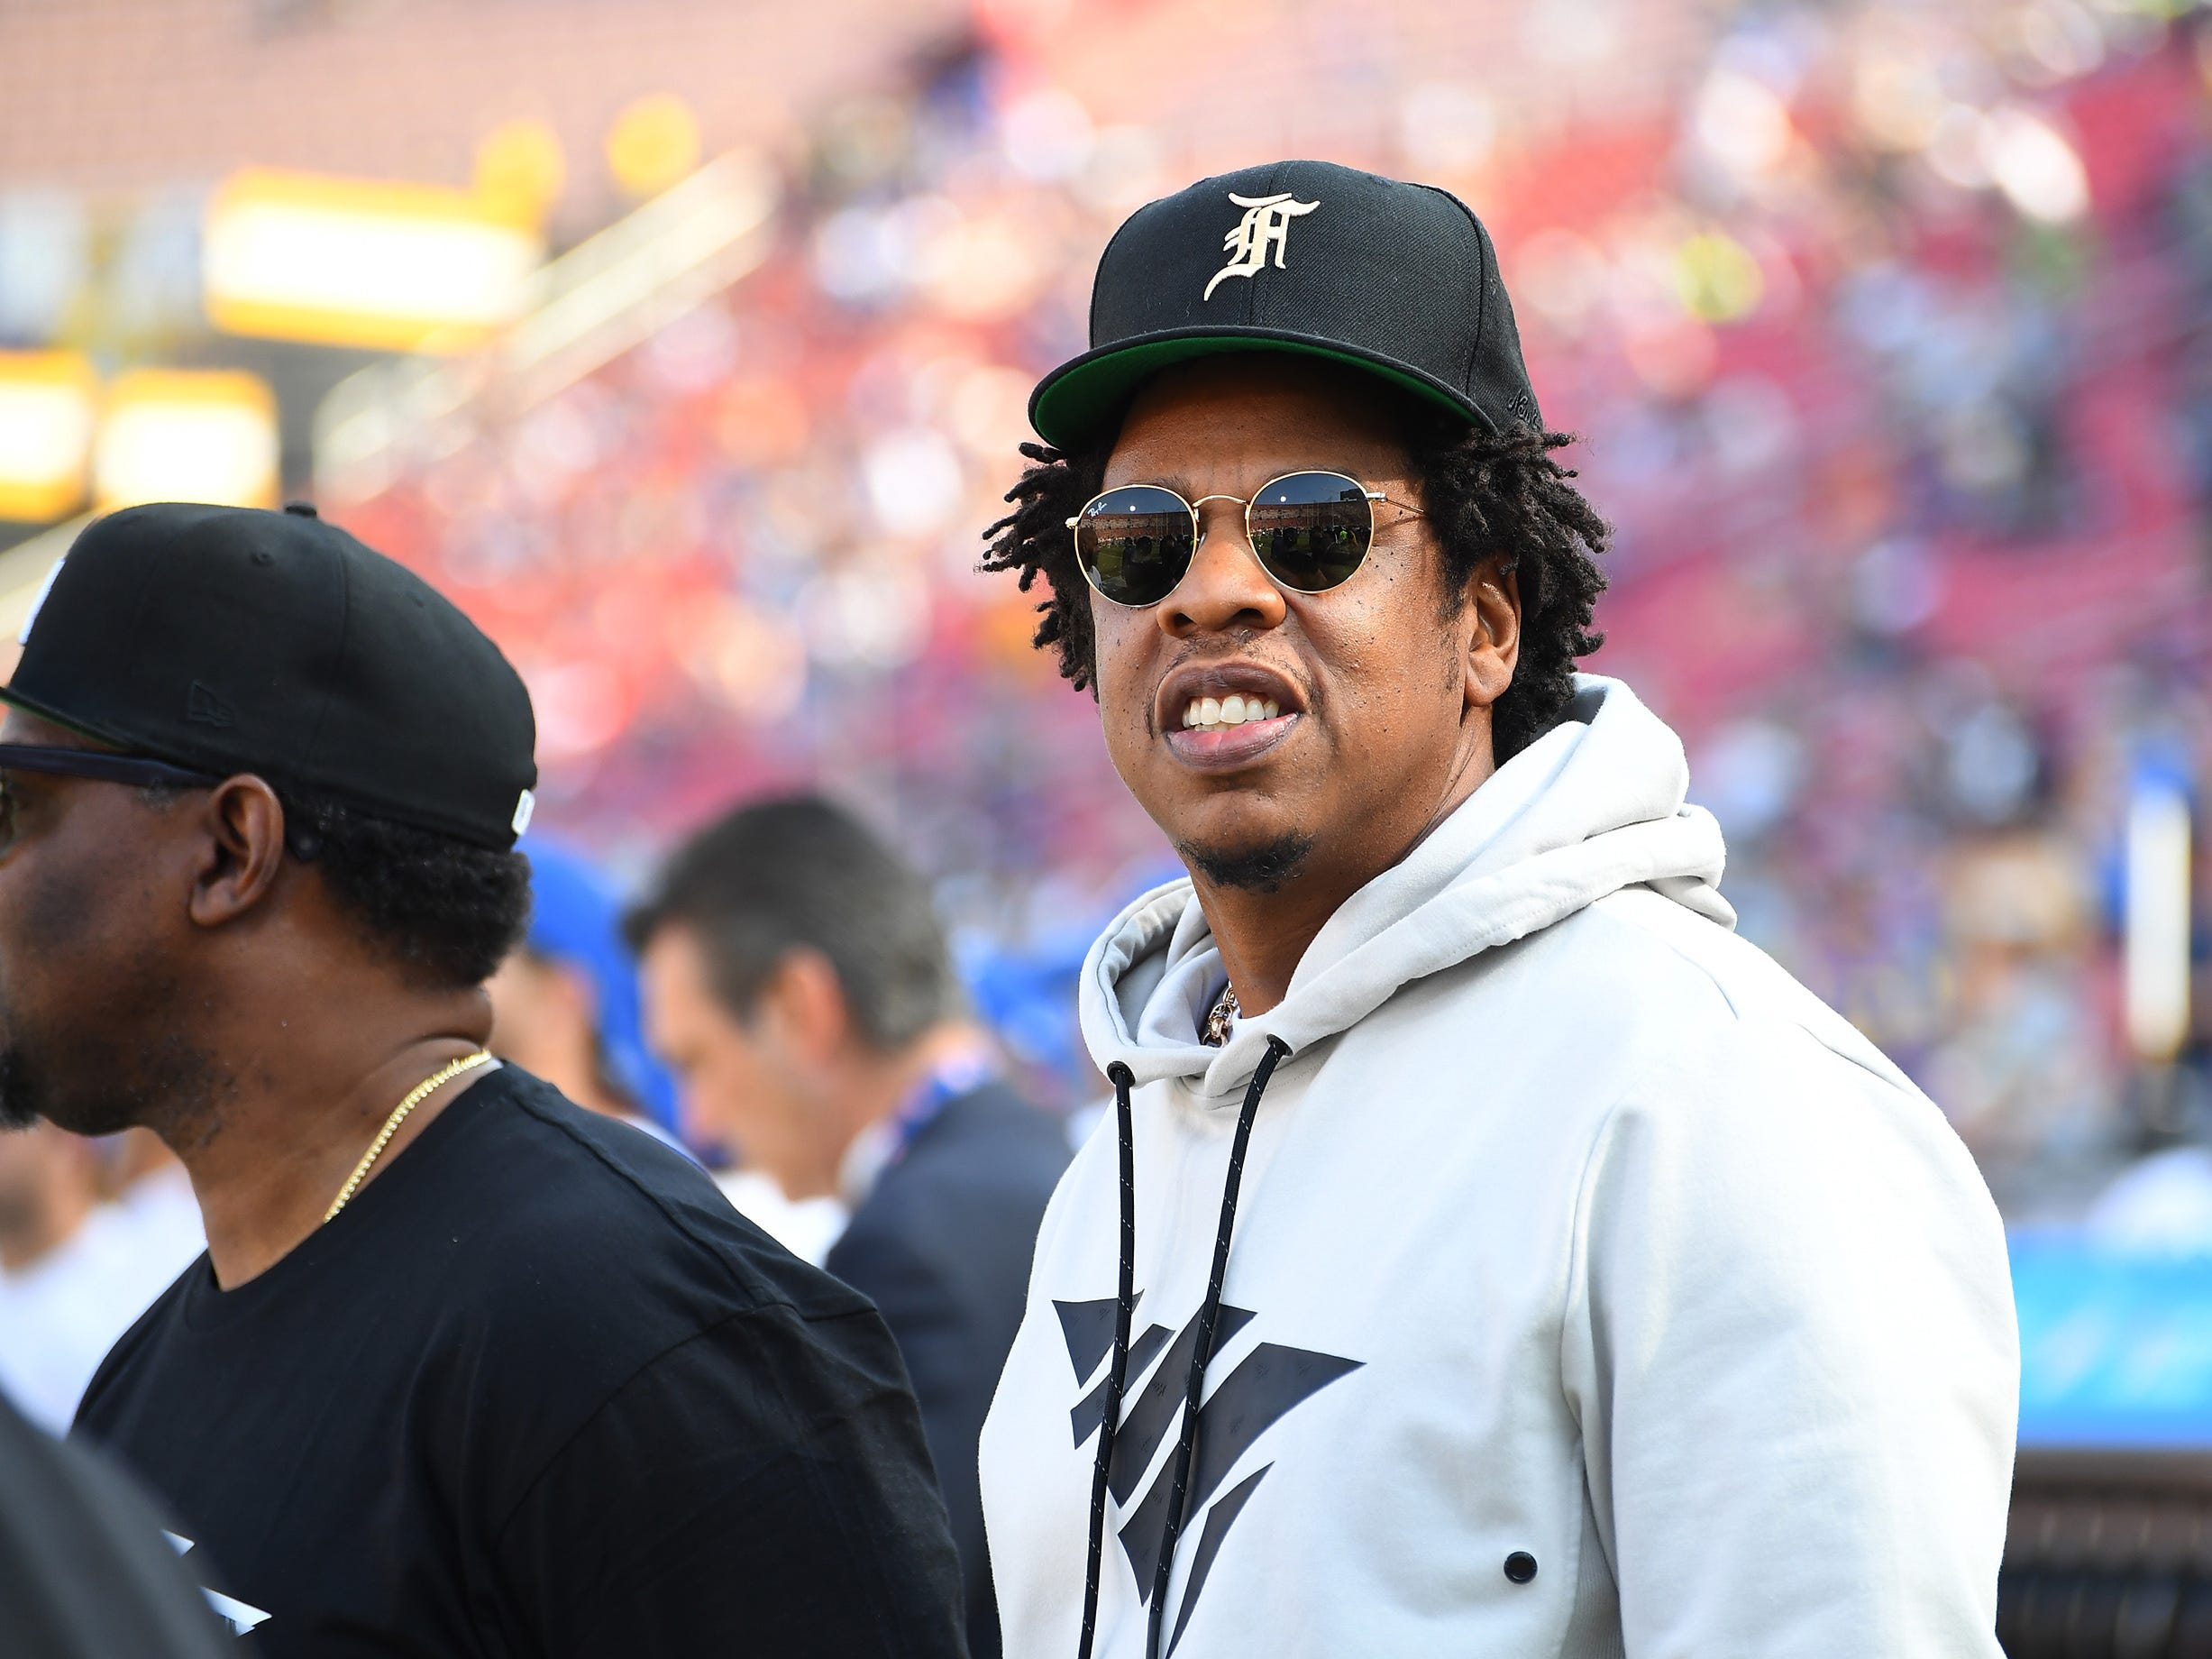 Nov 11, 2018; Los Angeles, CA, USA; Recording artist Jay-Z watches pre-game from the sidelines before a game between the Los Angeles Rams and the Seattle Seahawks at the Memorial Coliseum. Mandatory Credit: Jayne Kamin-Oncea-USA TODAY Sports ORG XMIT: USATSI-381526 ORIG FILE ID:  20181111_gma_aj4_134.jpg